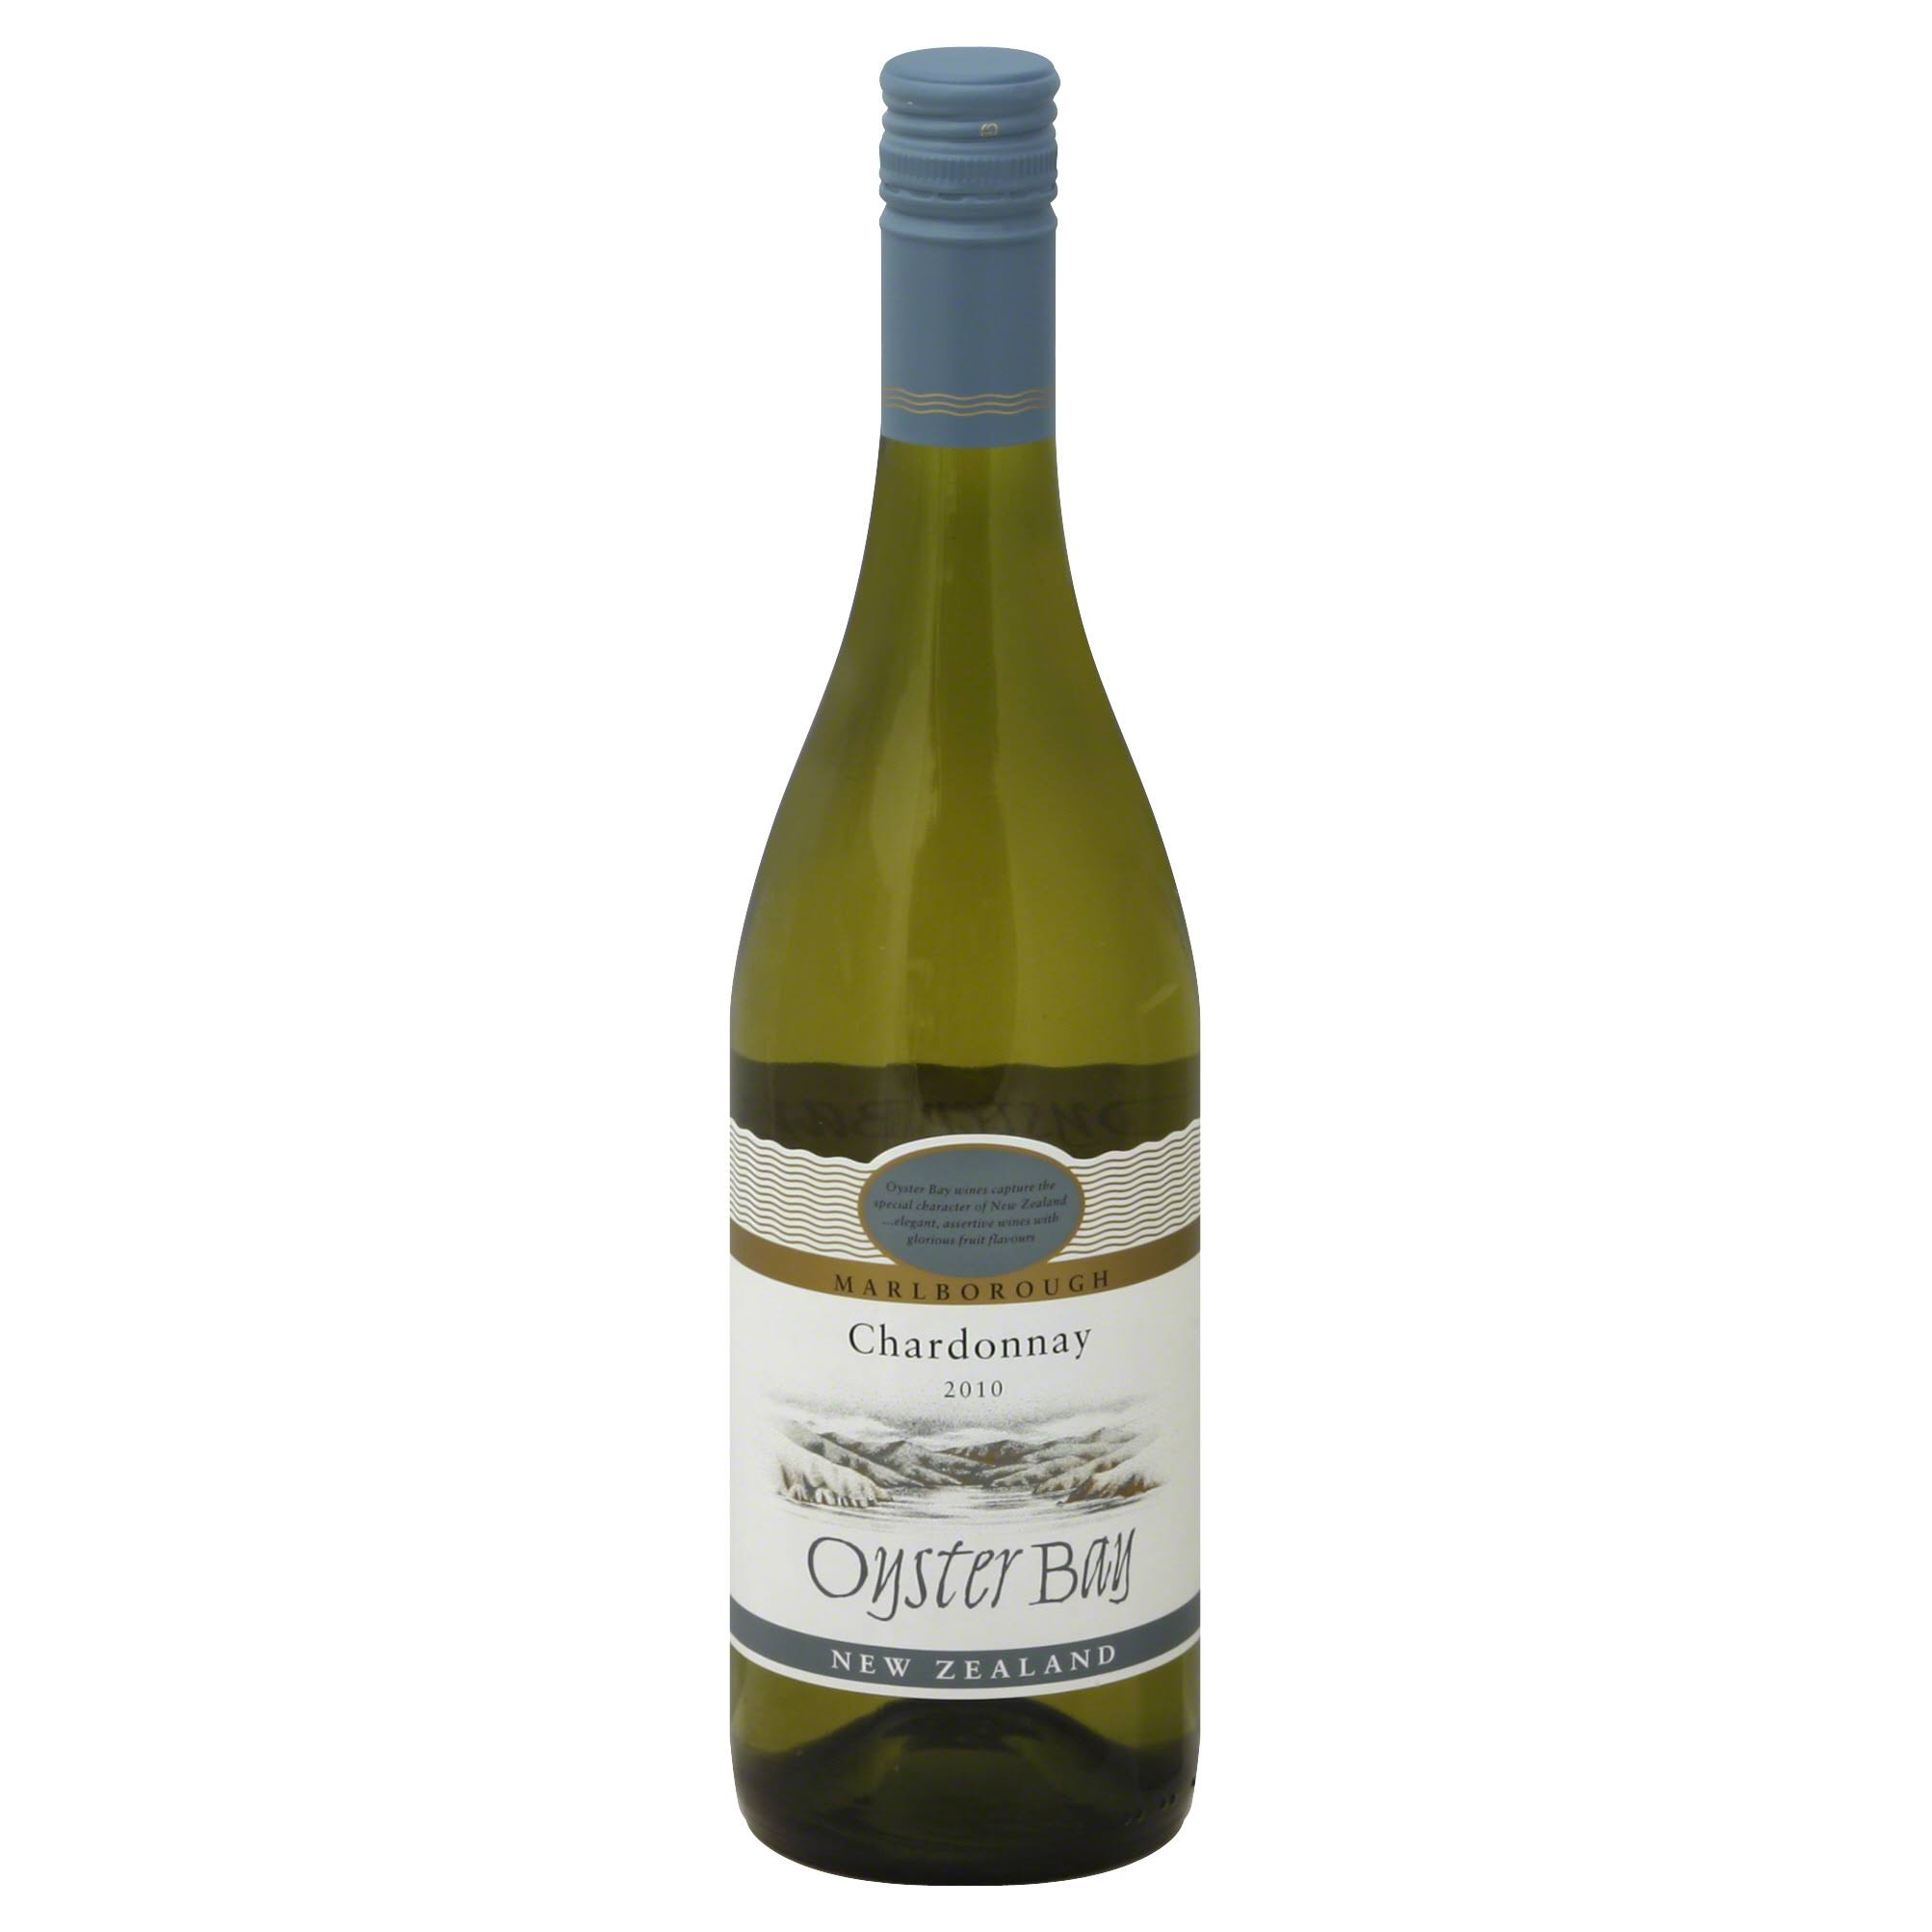 Oyster Bay Chardonnay - New Zealand, 2010